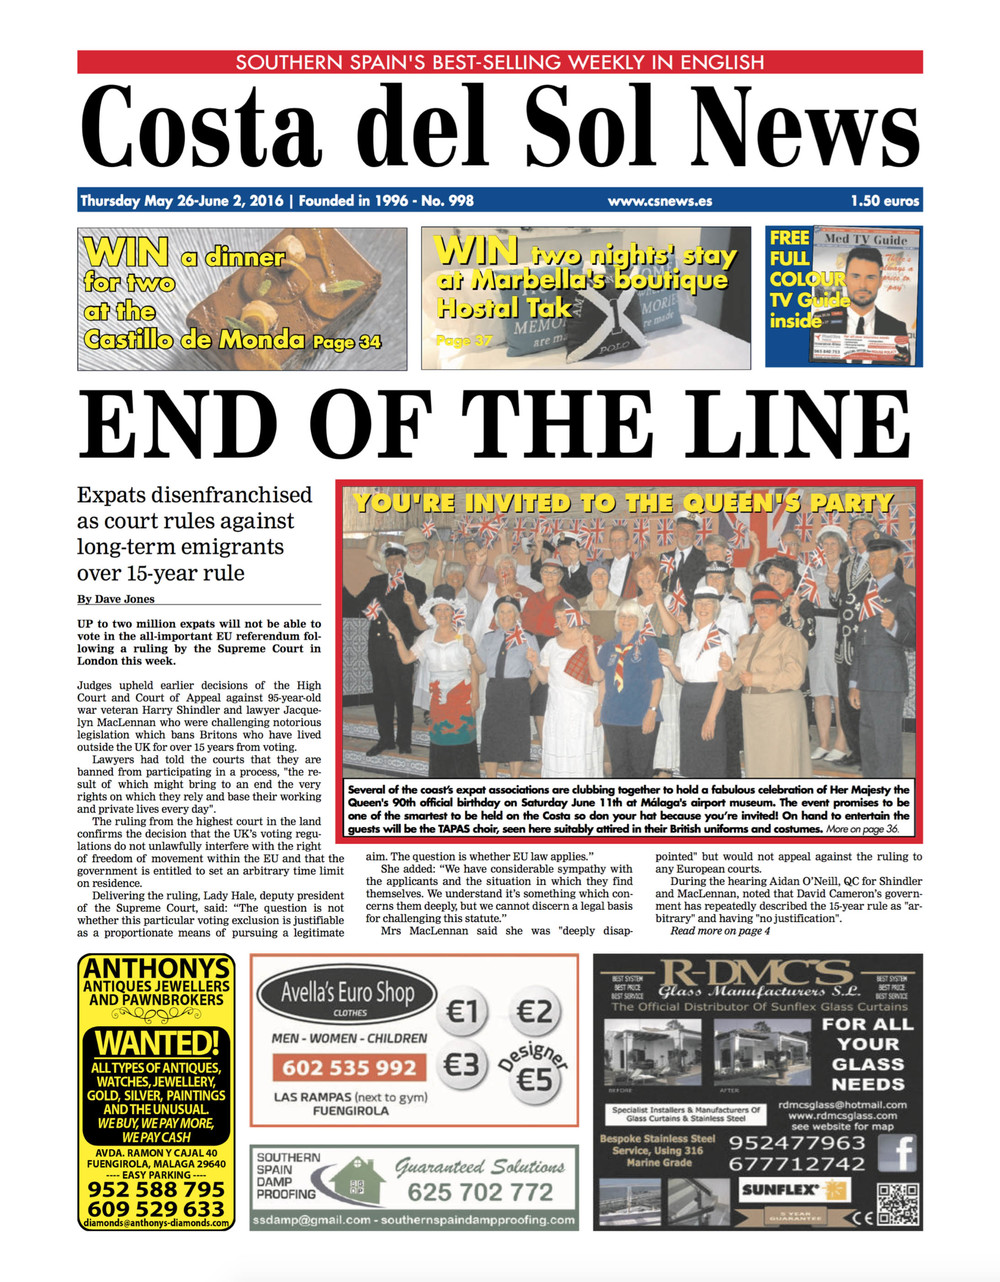 CdS News Page2-WEB.jpg